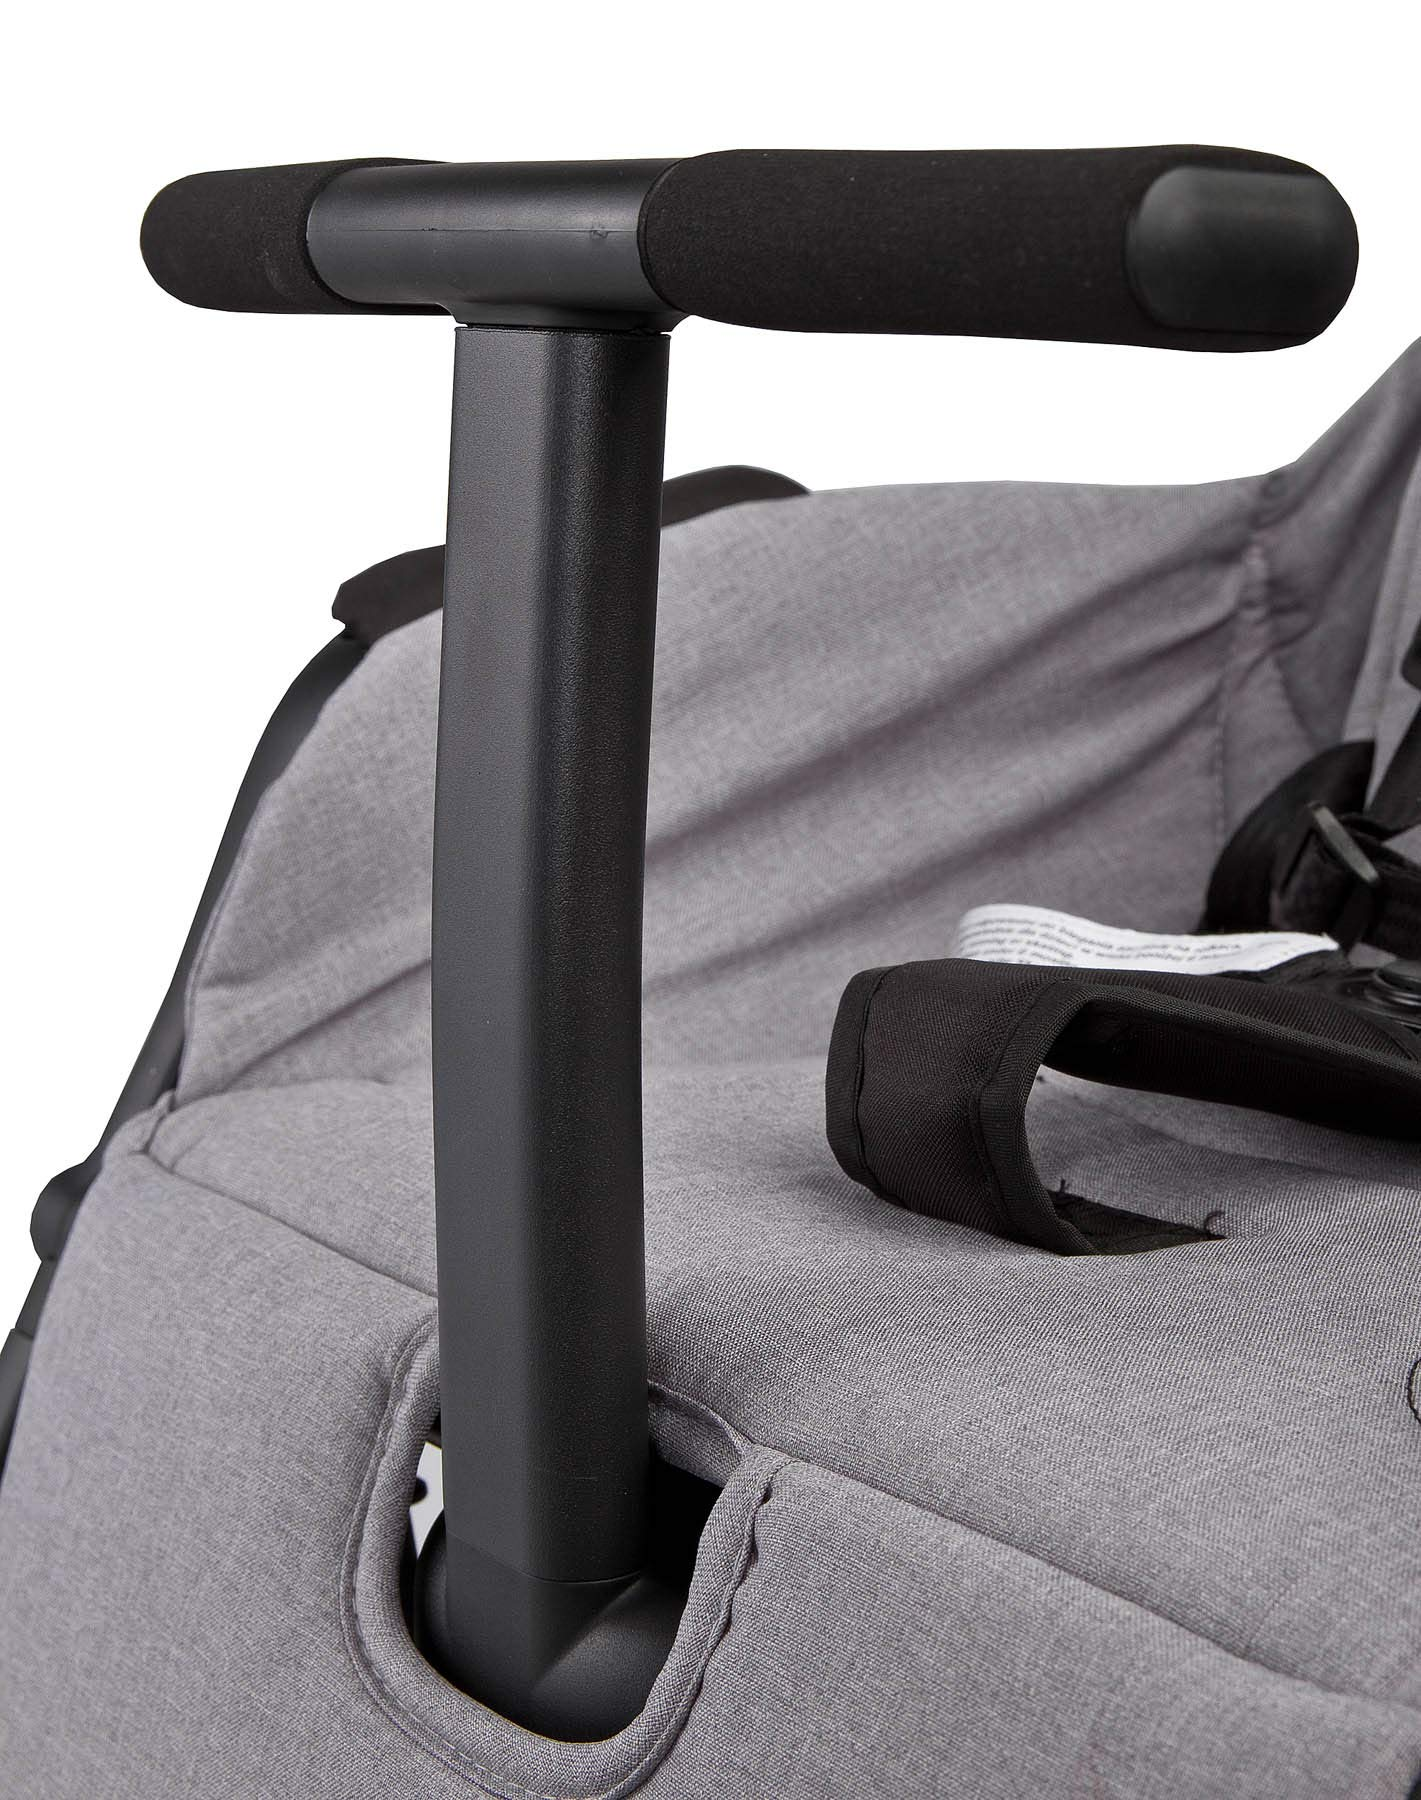 Aviator Ultralight Pushchair Grey Caretero Stroller for babies from 6 months Month weighing up to 15 kg Compact size and light weight (7.1kg) for easy manoeuvring and transport Eva foam wheels front with cushioning for driving comfort 9